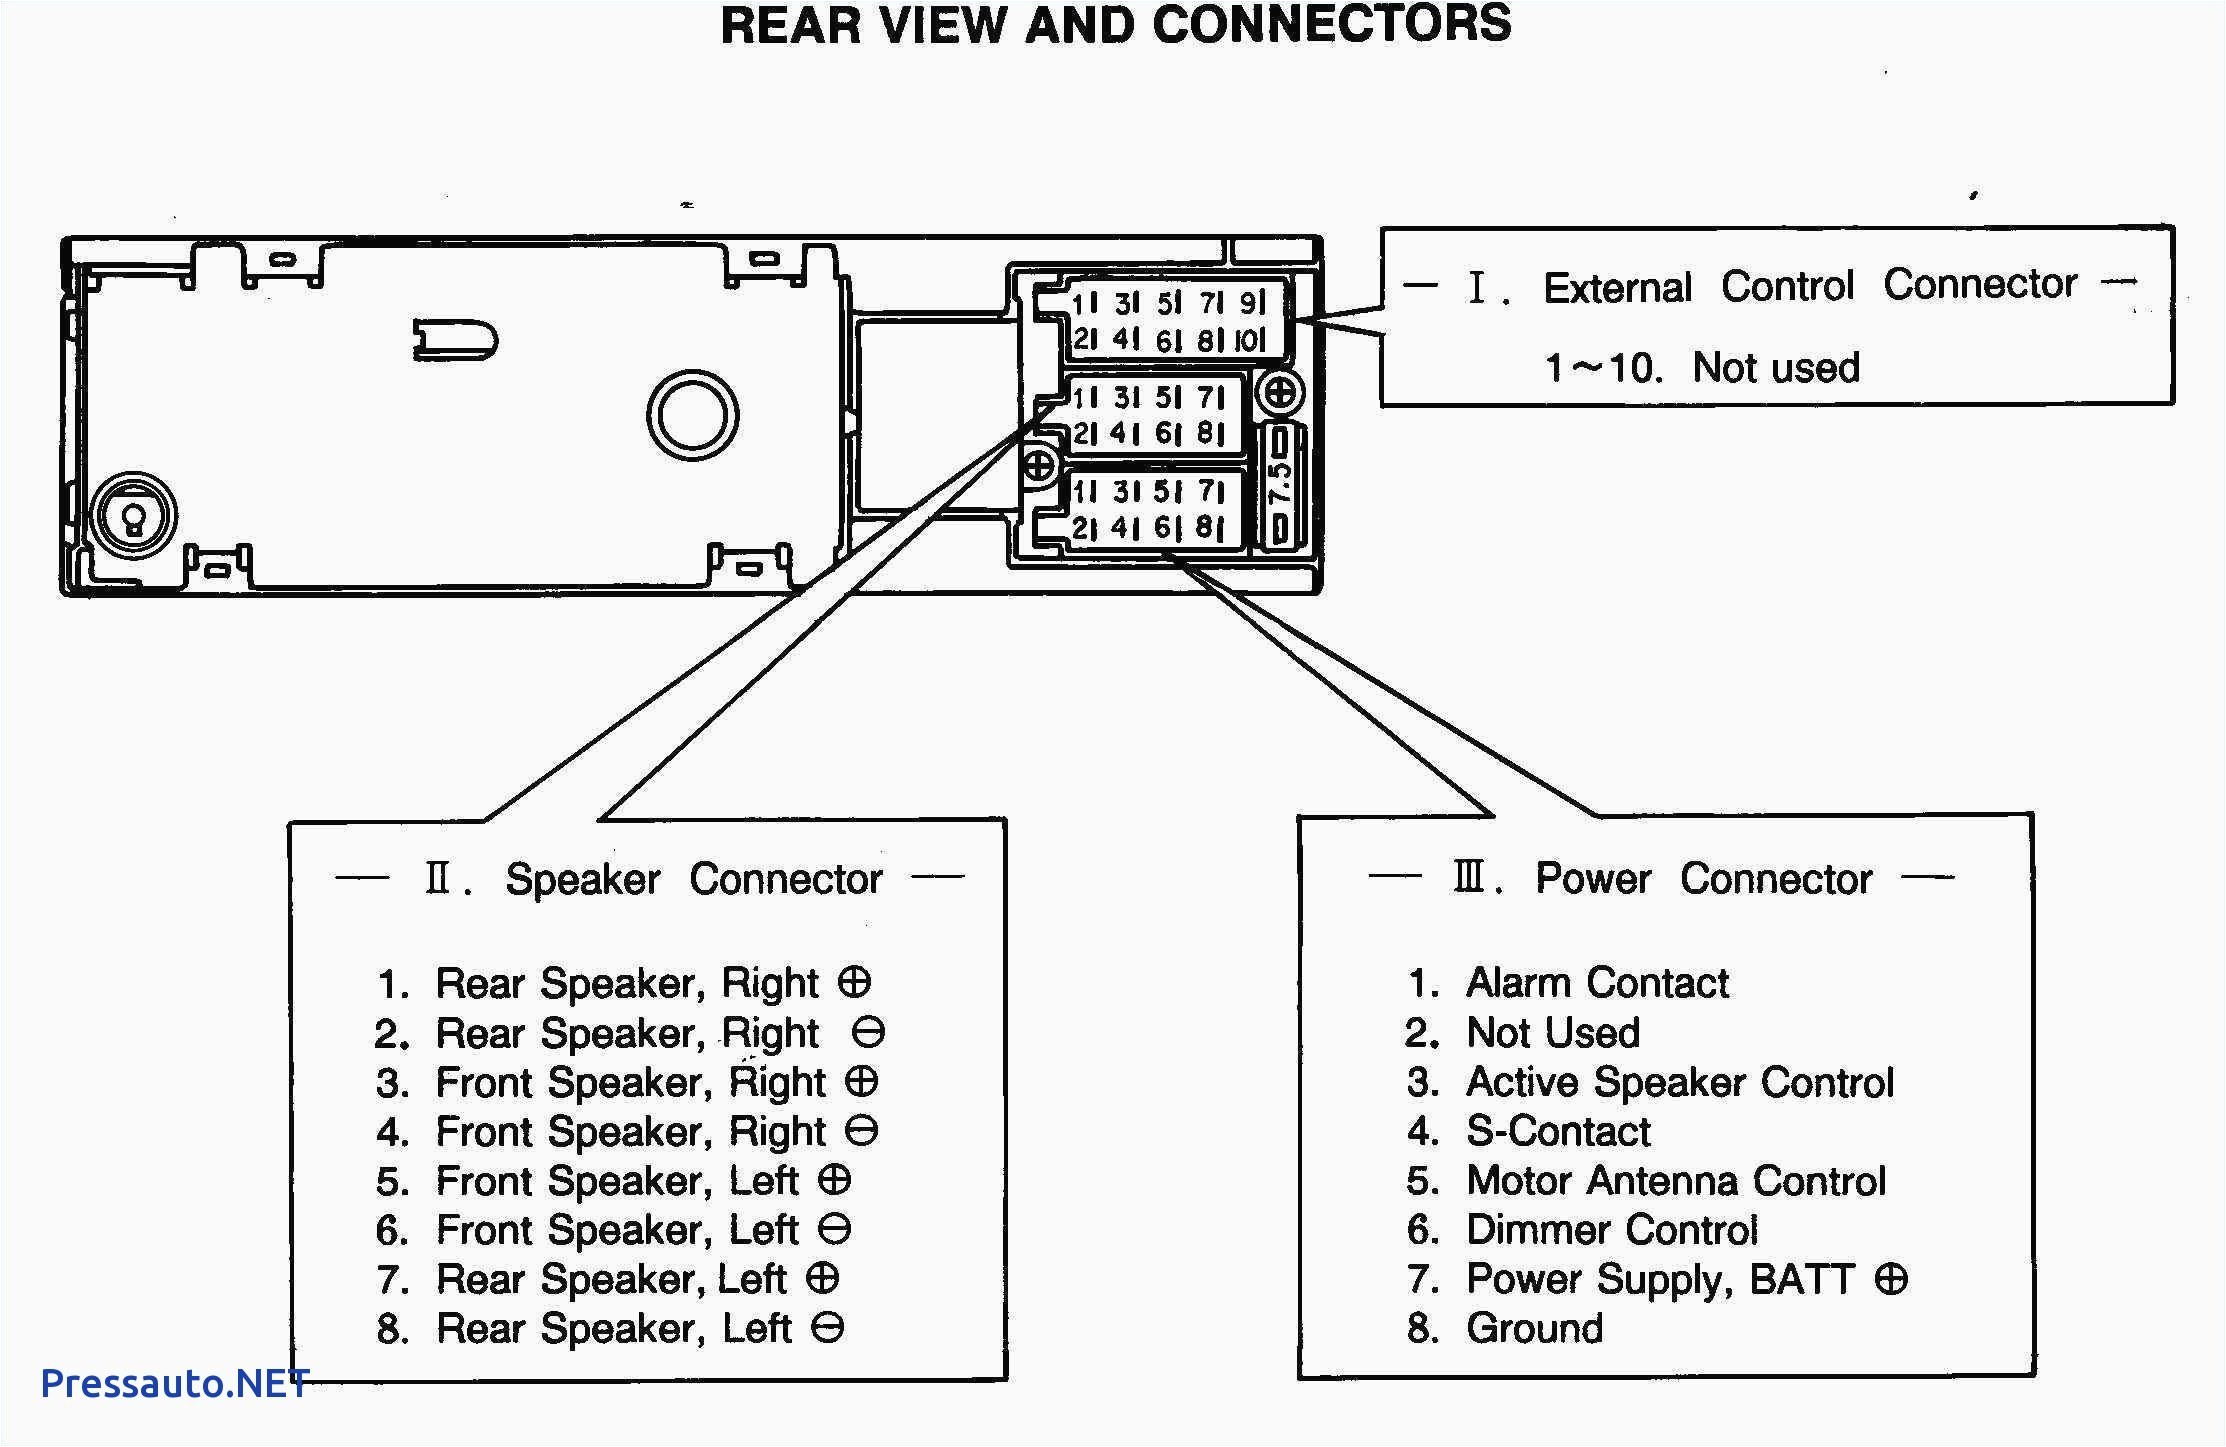 vw radio wire harness wiring diagram expert vw mk3 radio wiring diagram 2002 jetta radio wiring